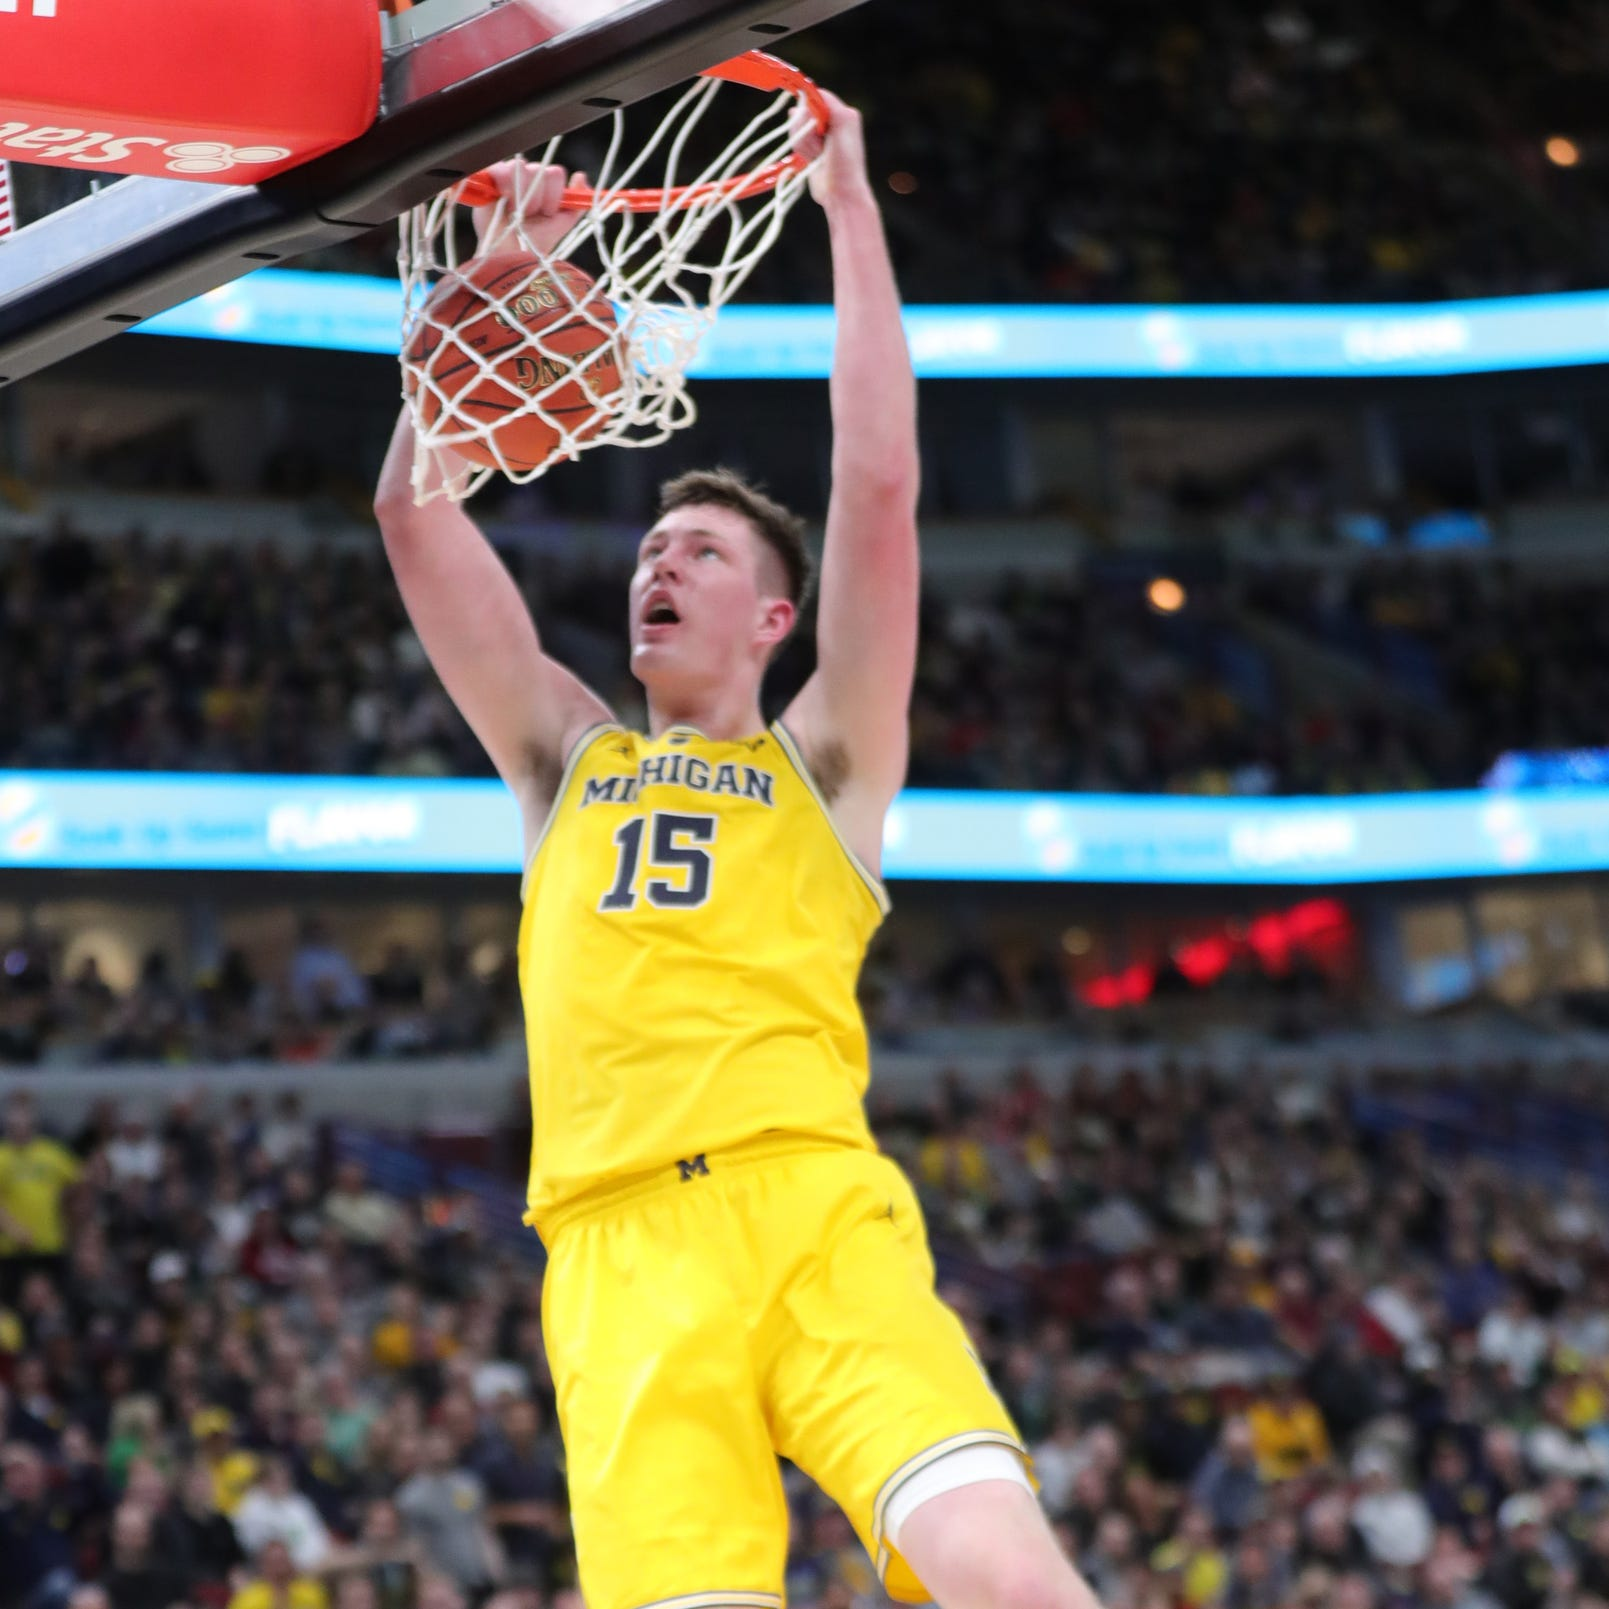 Michigan basketball blows past Iowa in vintage March performance